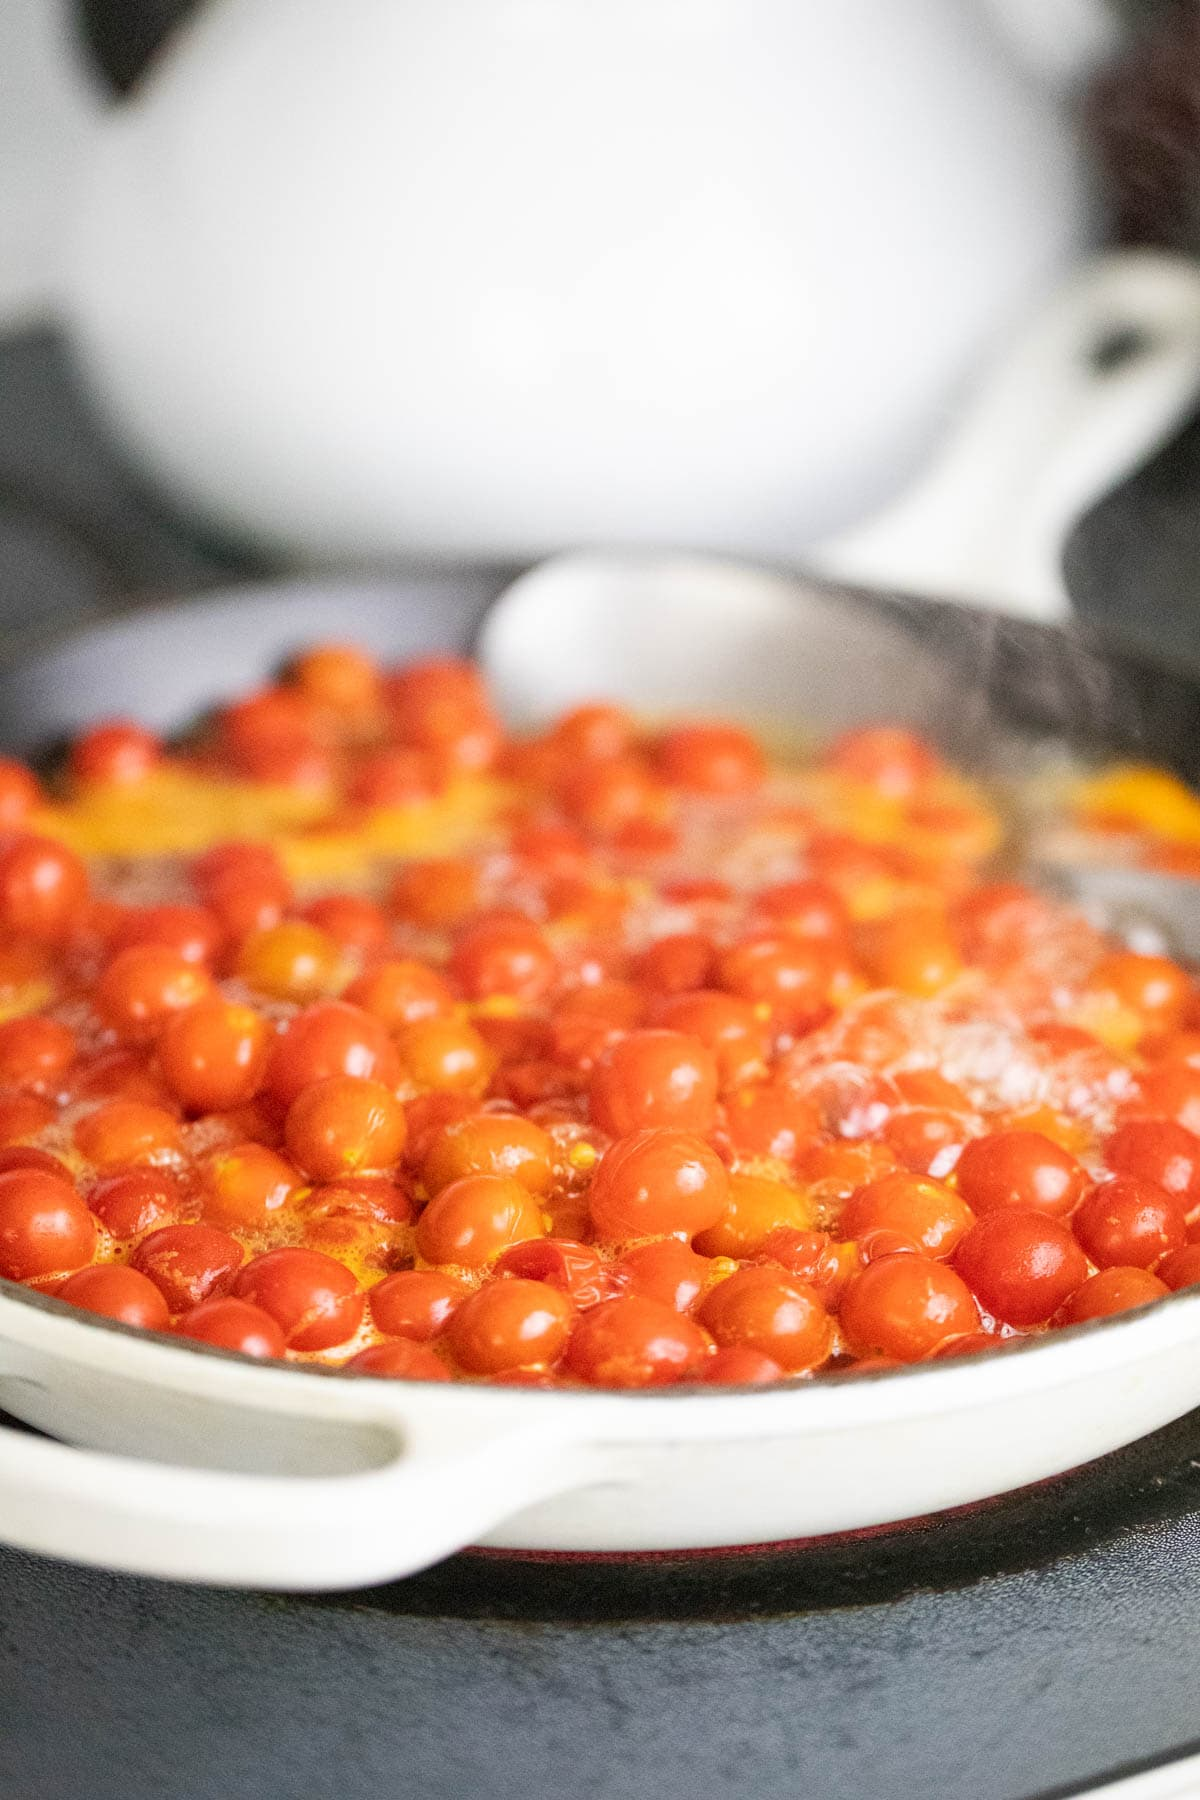 Boiling cherry tomatoes before canning.